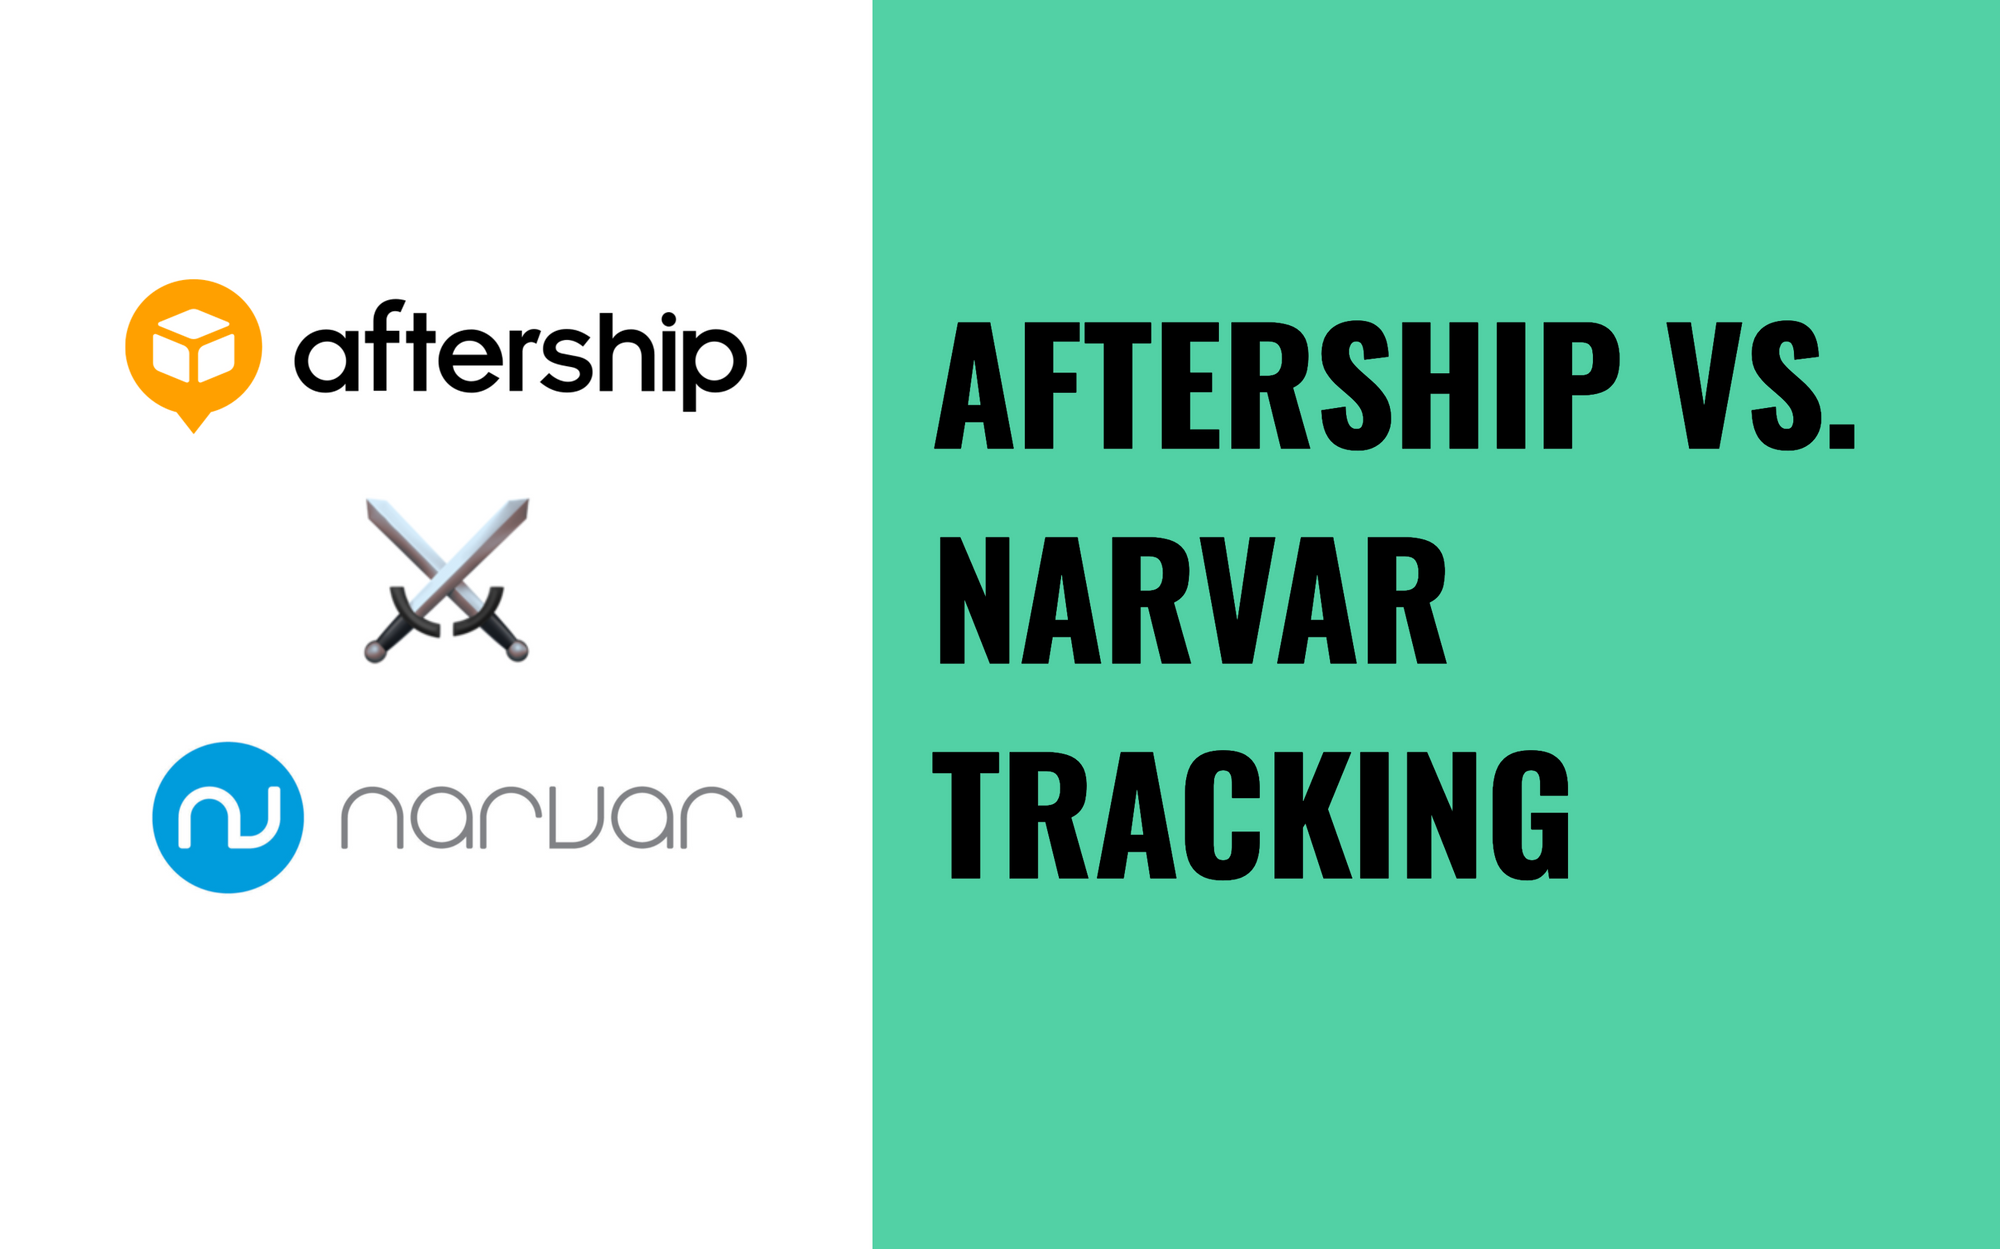 Narvar Tracking Vs. AfterShip: Which Is Best for Your Business?